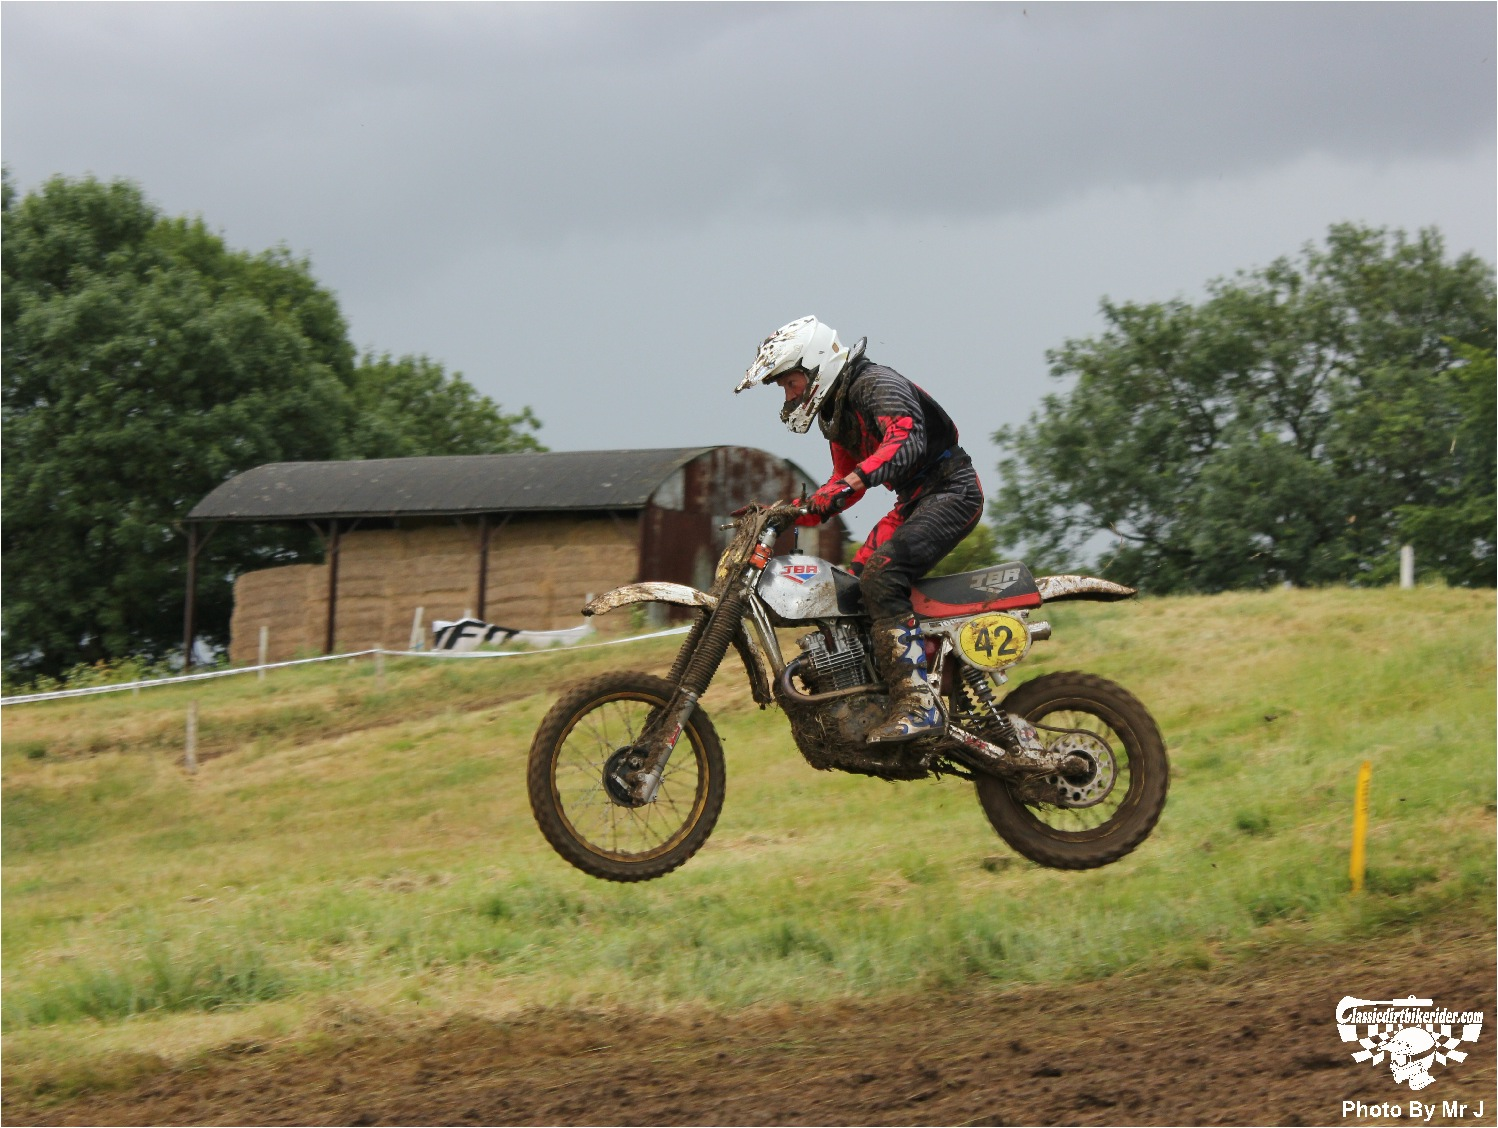 king of the castle 2015 photos Farleigh Castle twinshock motocross classicdirtbikerider.com 76